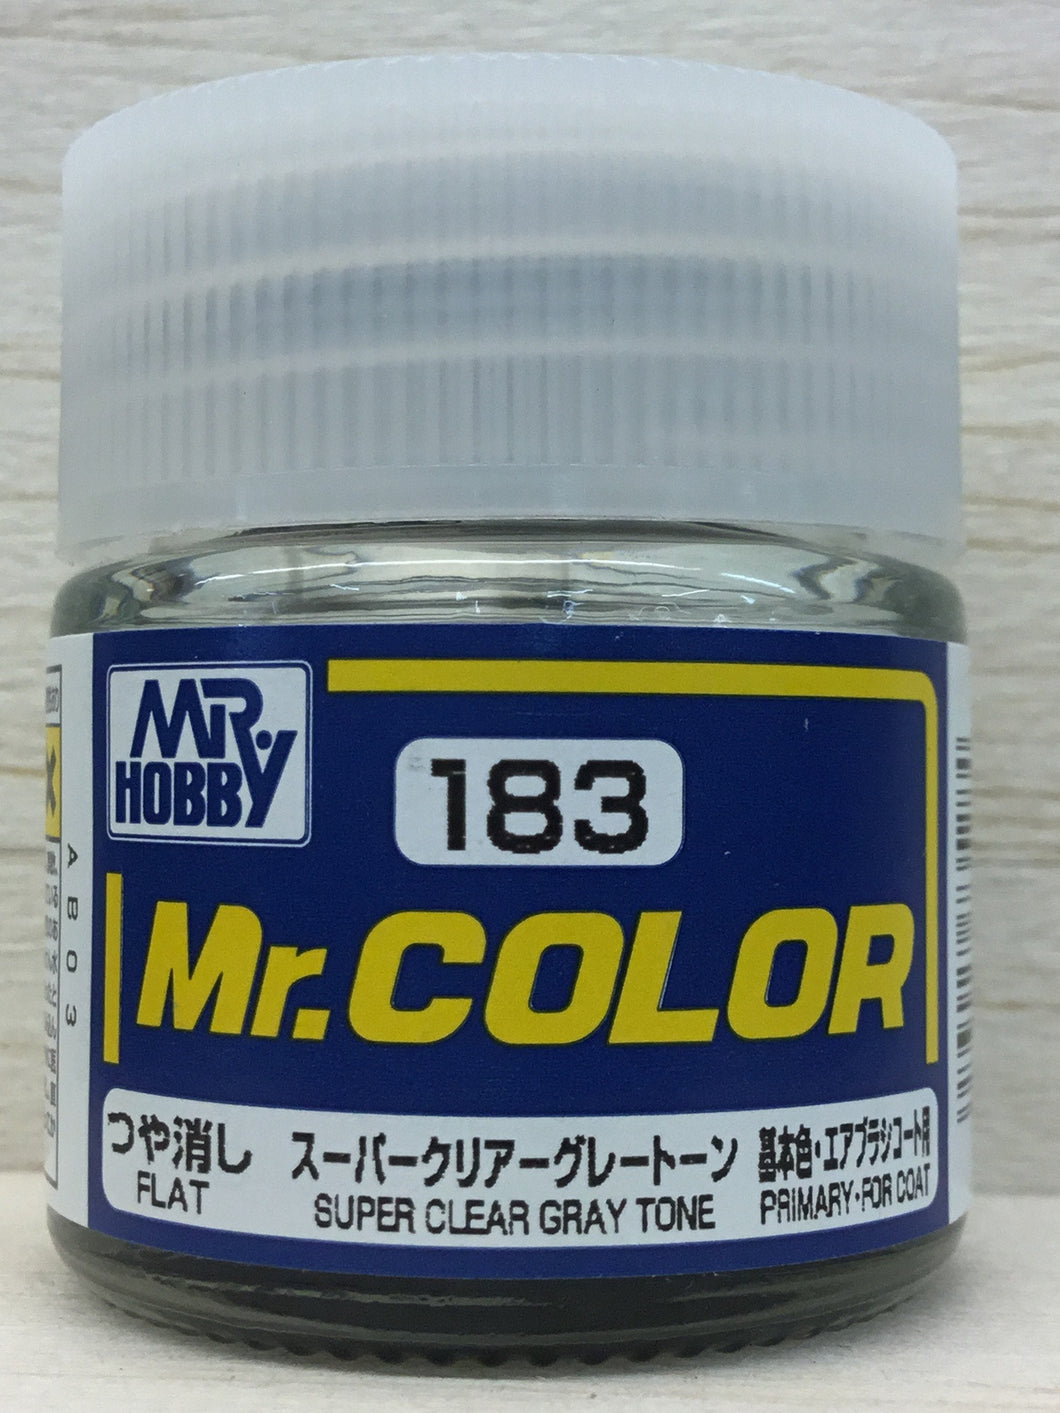 GUNZE MR COLOR C183 FLAT SUPER GRAY CLEAR TONE